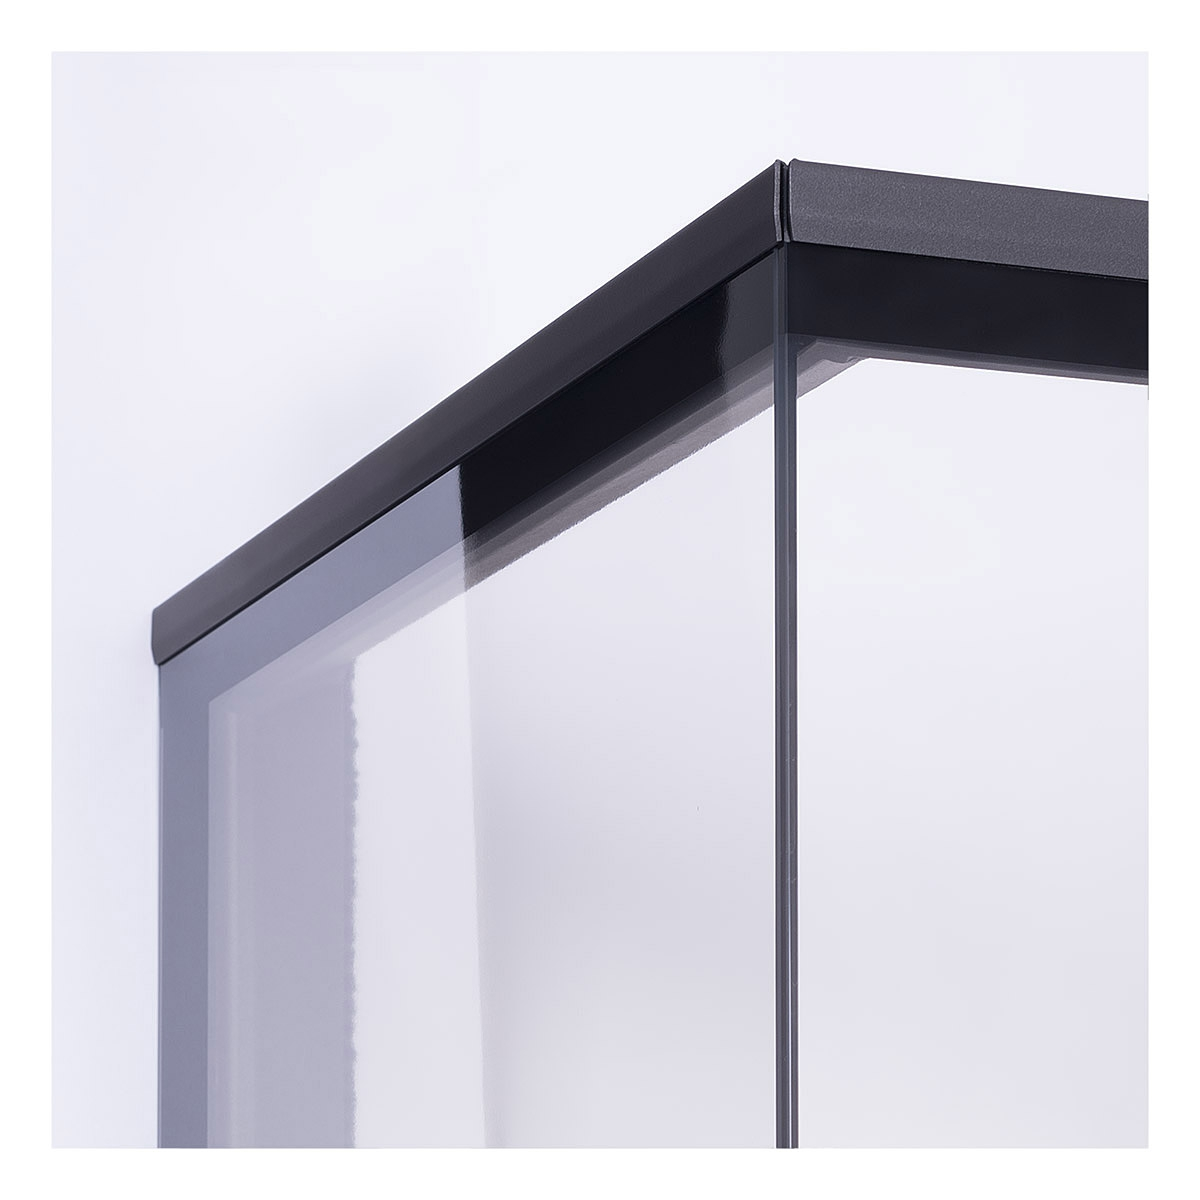 HEAT C 3g L 80.52.31.01(21) - hot-air three-sided fireplace insert with lifting door and bent (split) glazing